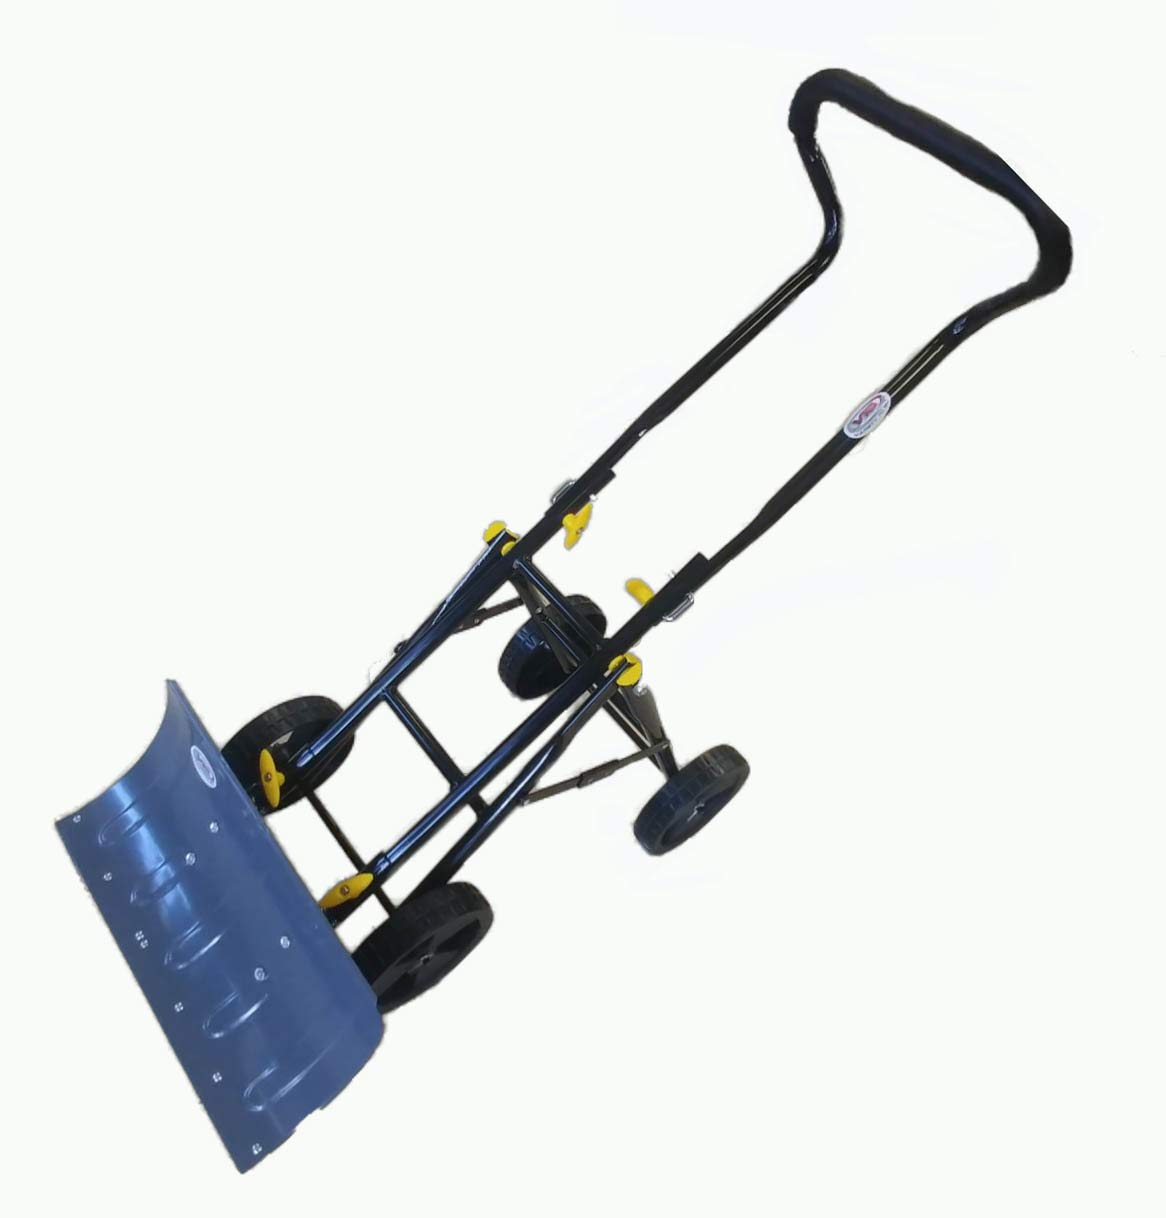 Variety To Go Snow Shovel with Wheels Adjustable Wheeled Snow Pusher, Heavy Duty Rolling Snow Plow Shovels with 8'' Wheels, Efficient Snow Plow Snow Removal Tool by Variety To Go